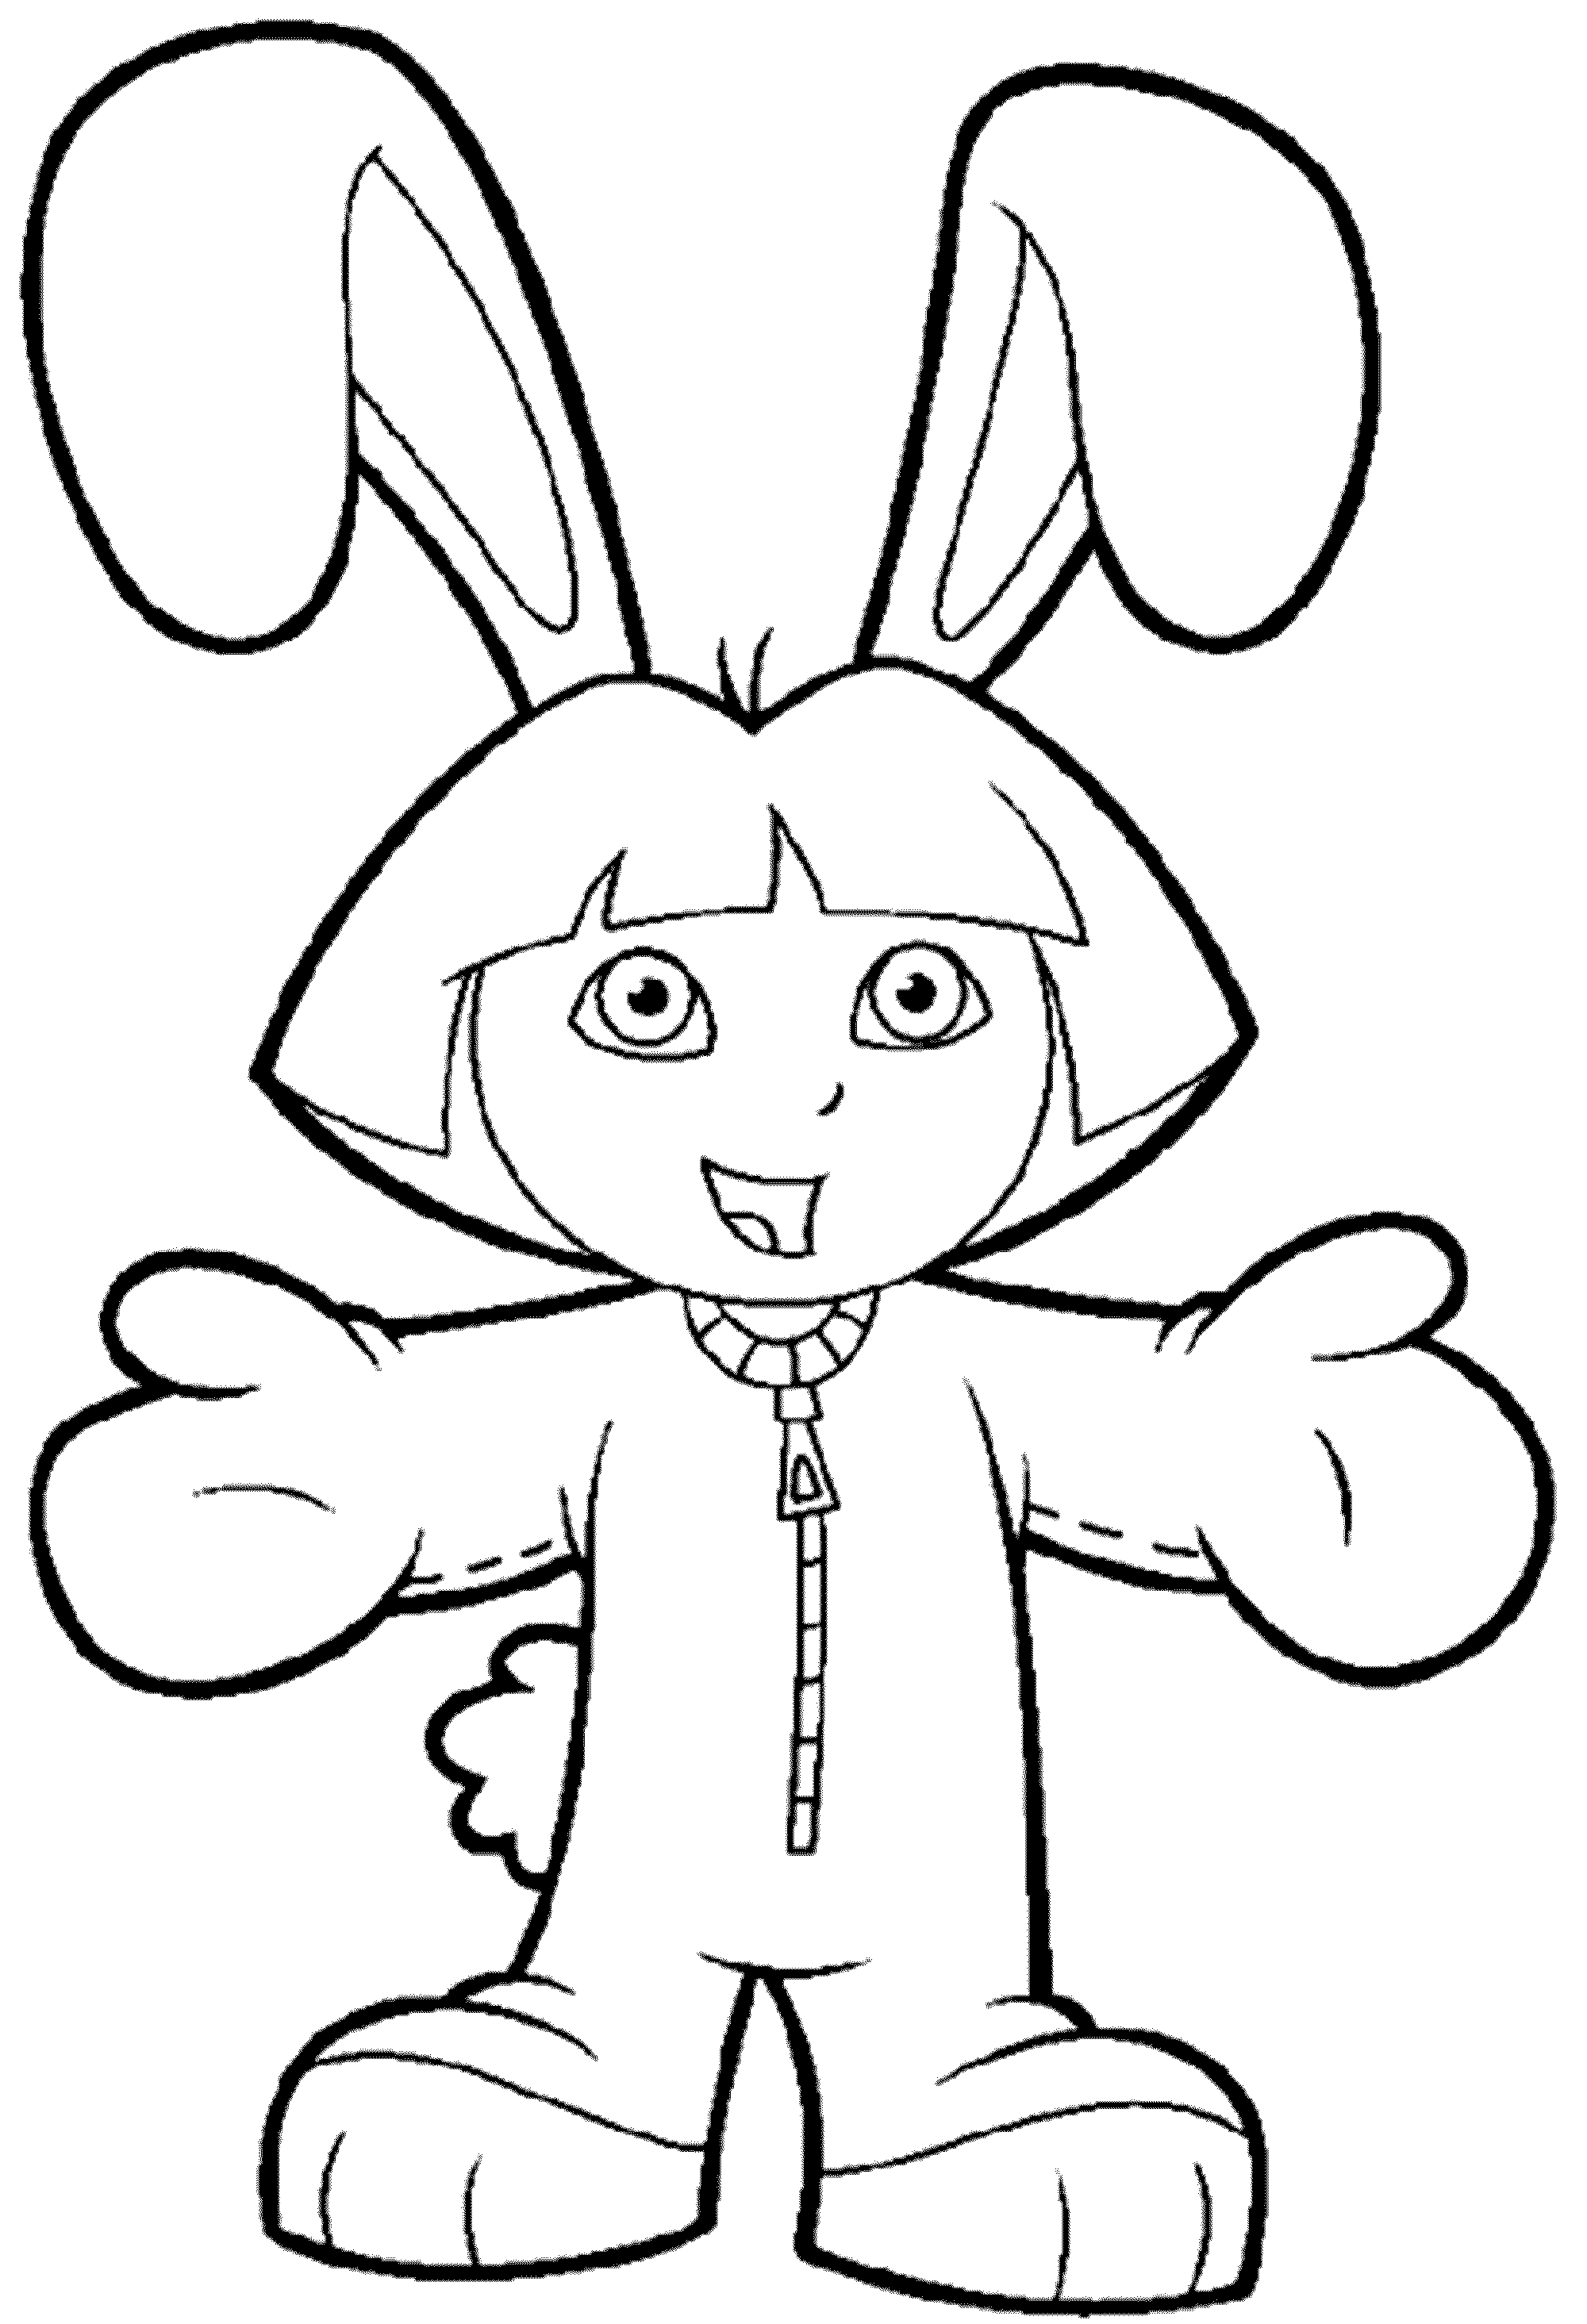 dora coloring pages to print print download dora coloring pages to learn new things dora to print pages coloring